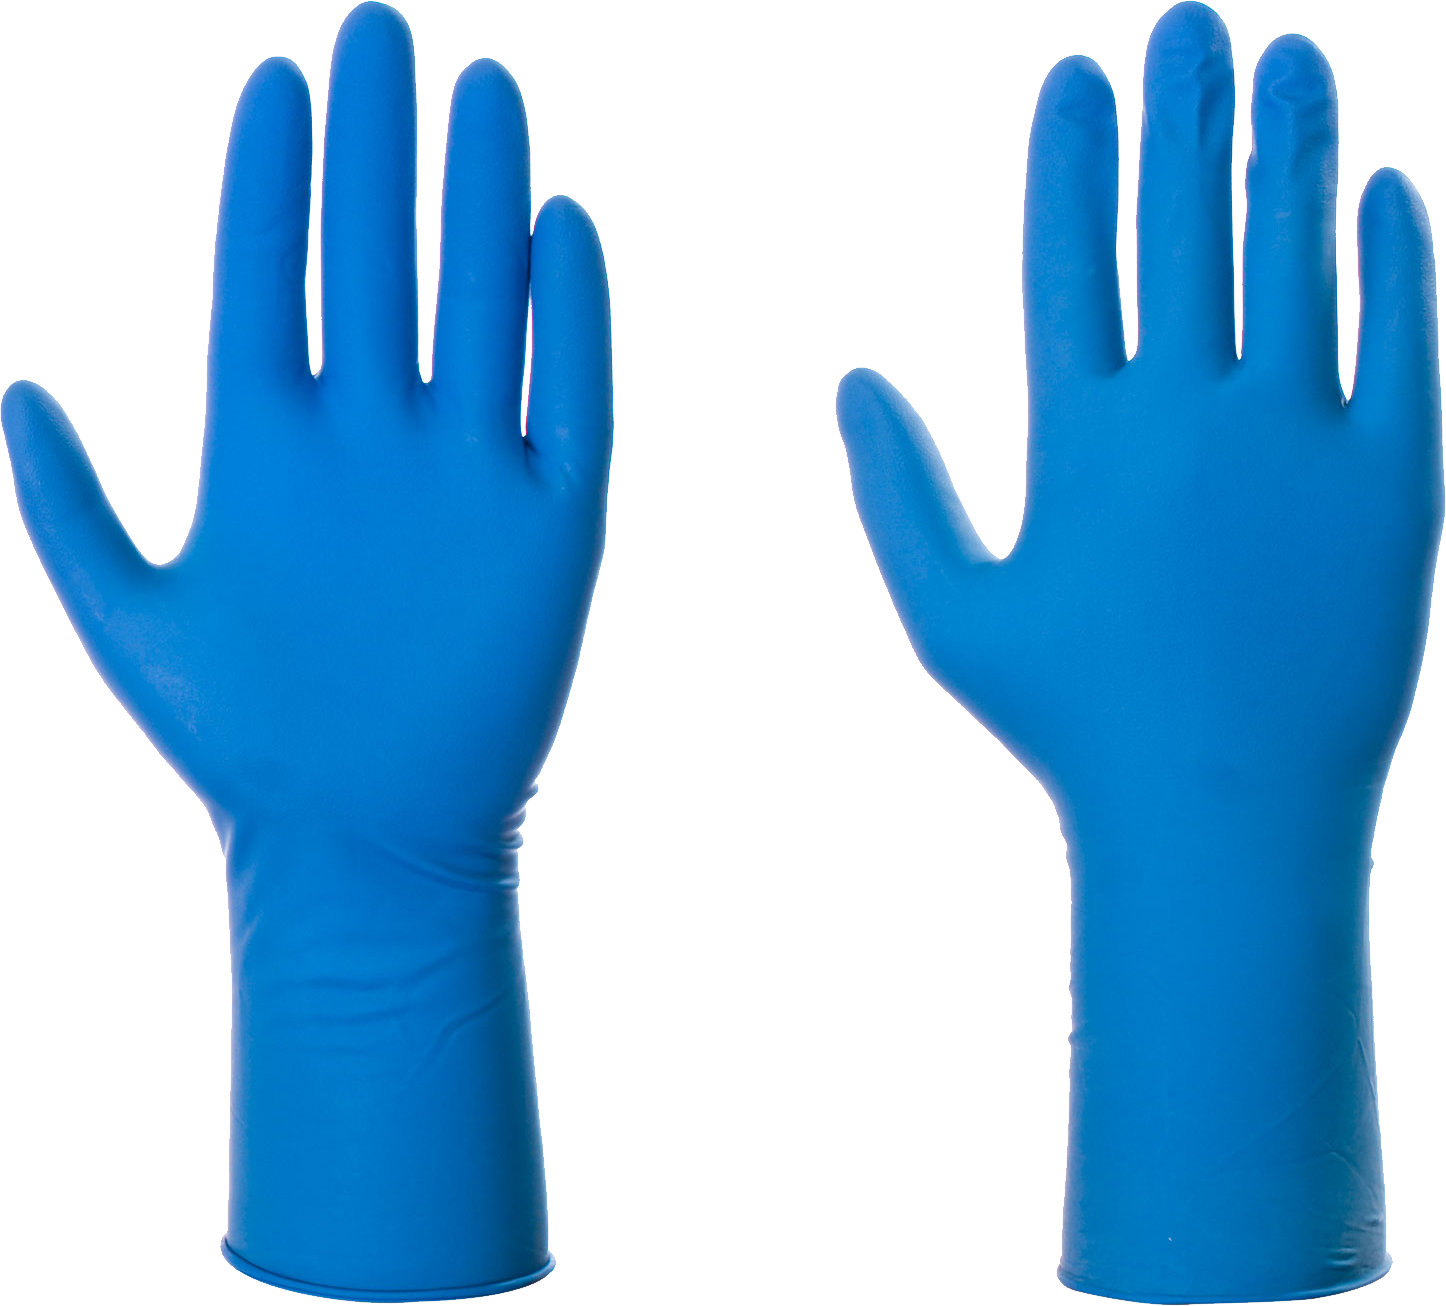 Transparent gloves blue. Png image purepng free